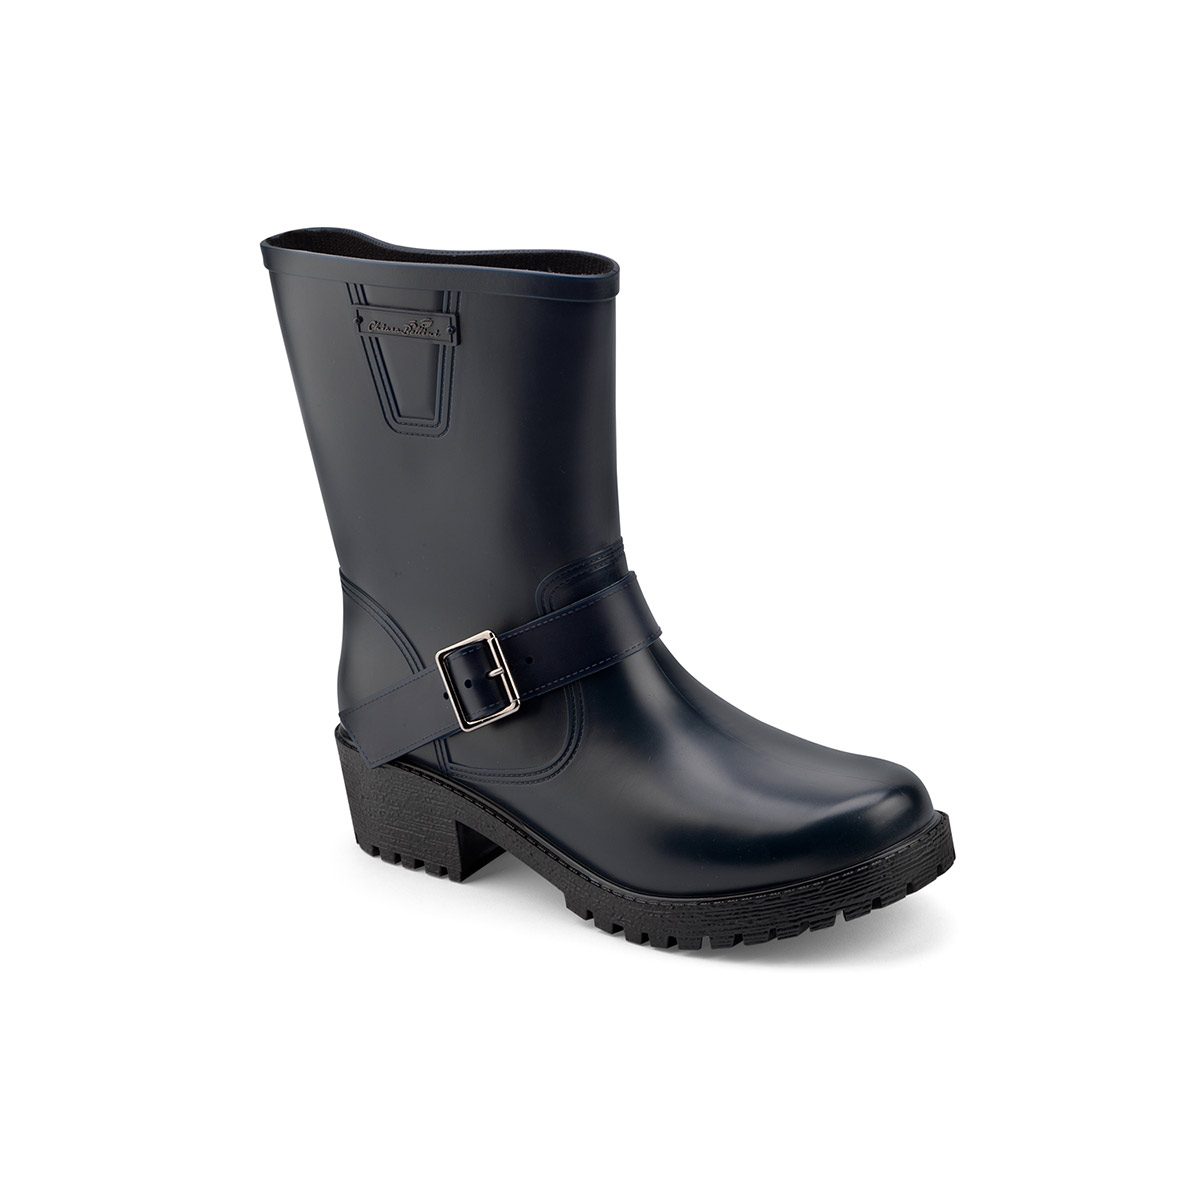 Pvc Biker boot for women with strap